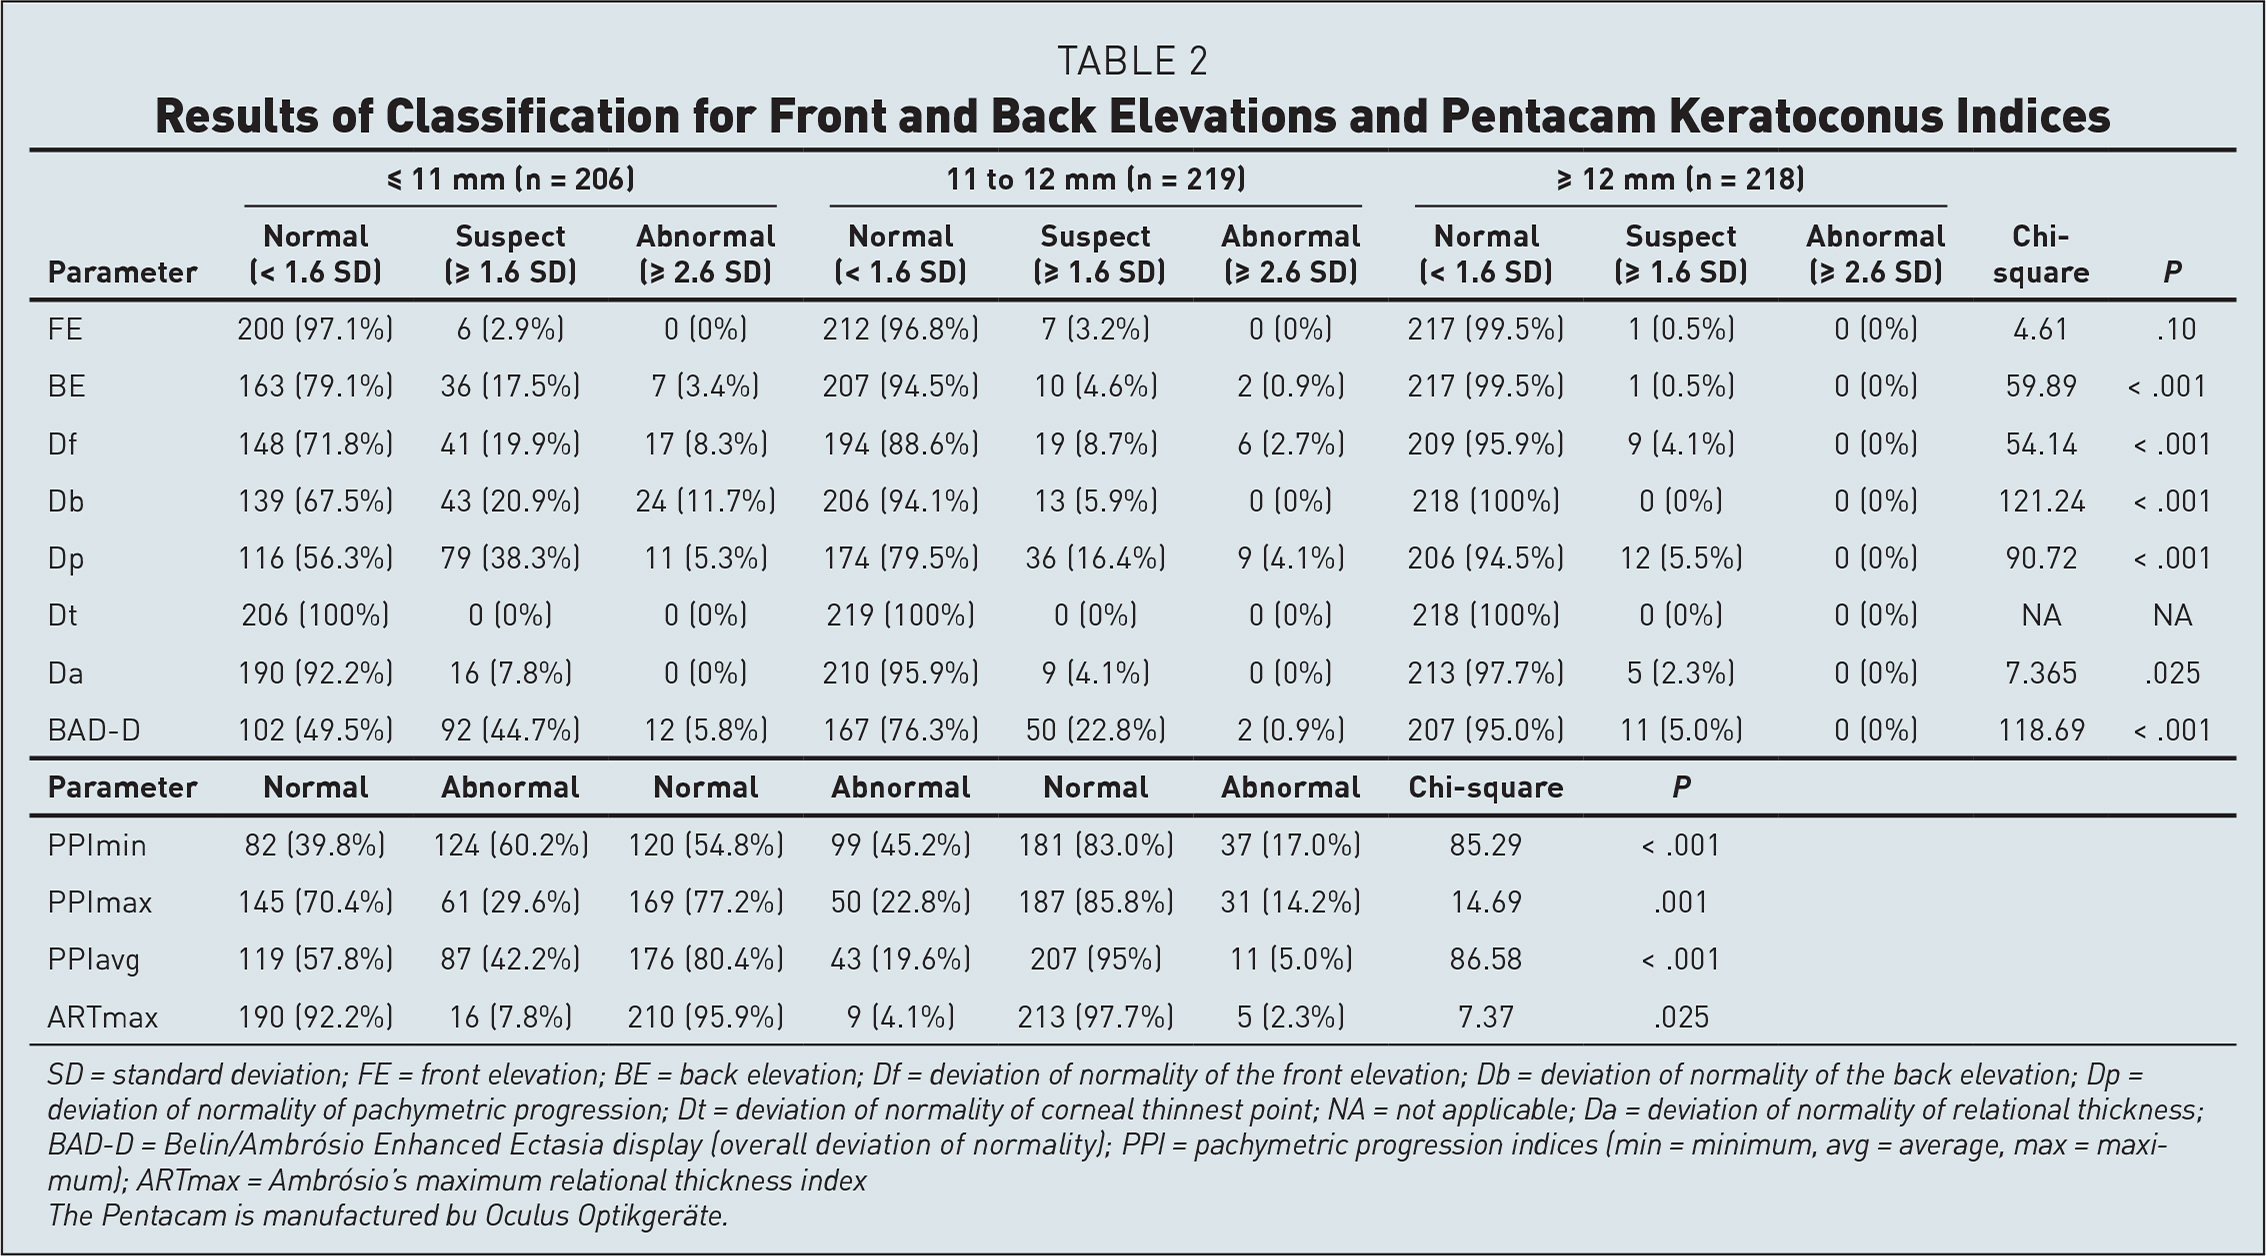 Results of Classification for Front and Back Elevations and Pentacam Keratoconus Indices